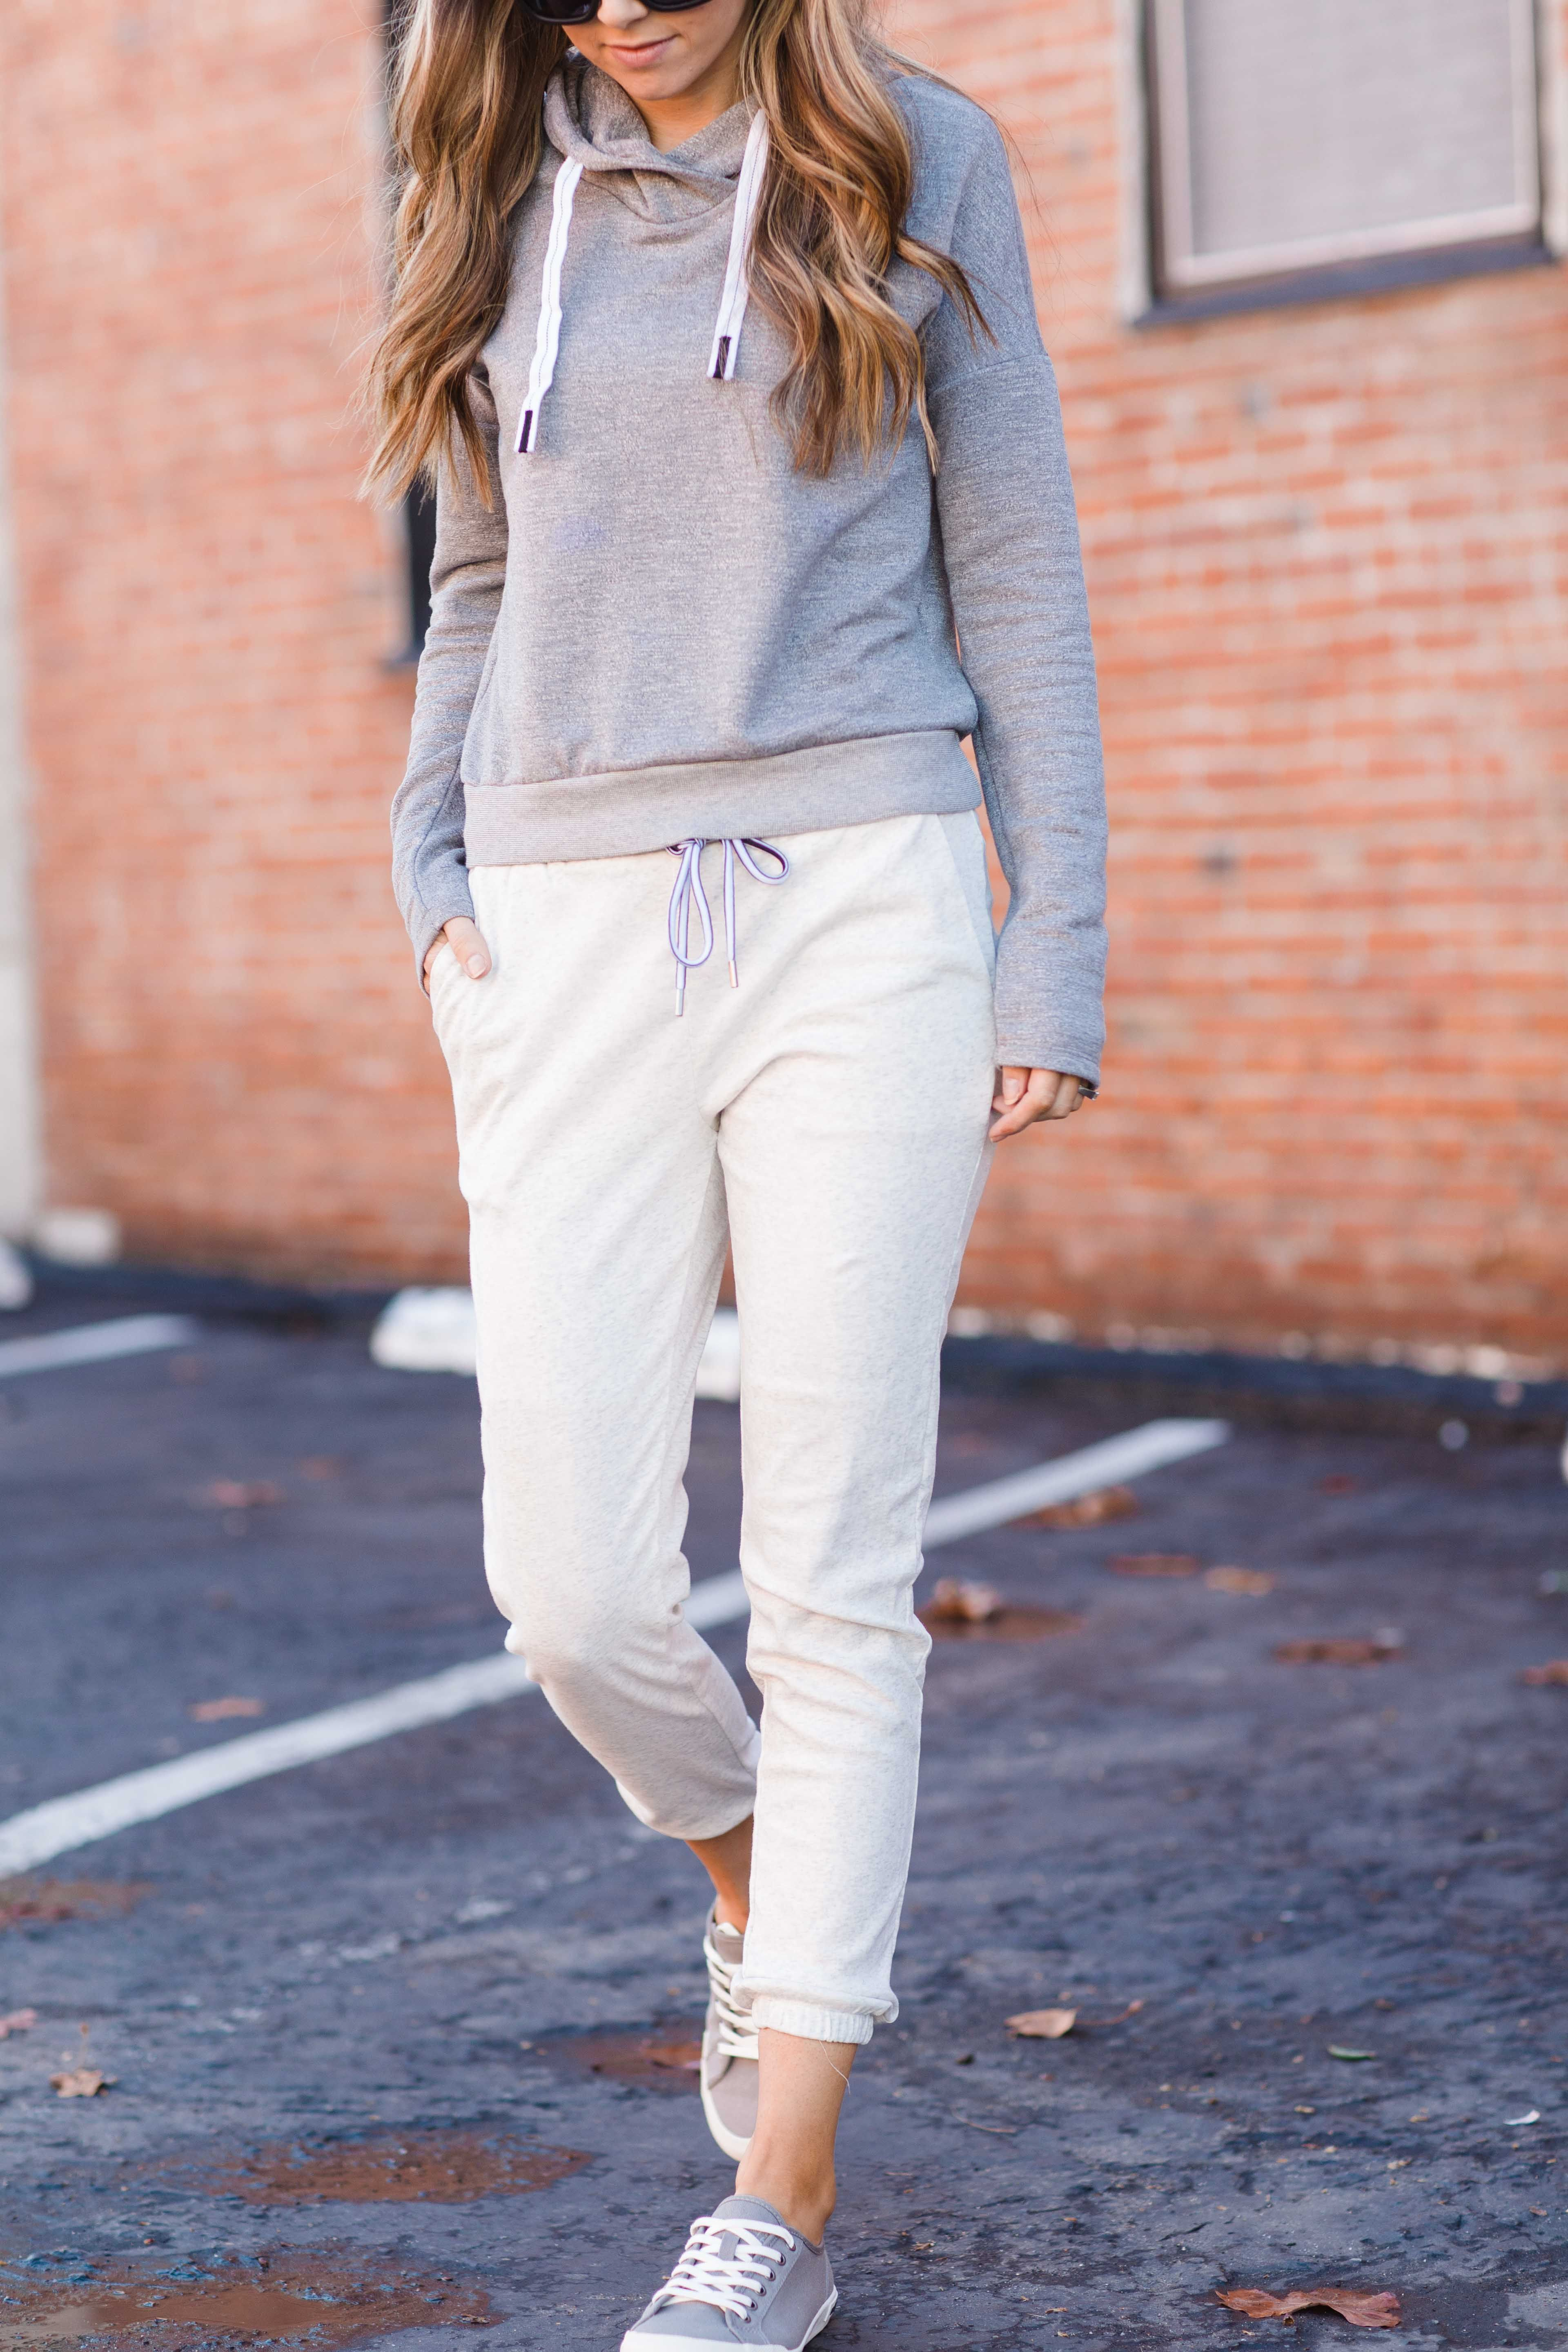 80244b58 A simple athleisure look with a pair of joggers and a sweatshirt from my  @StitchFix box. These joggers are so versatile! #ad